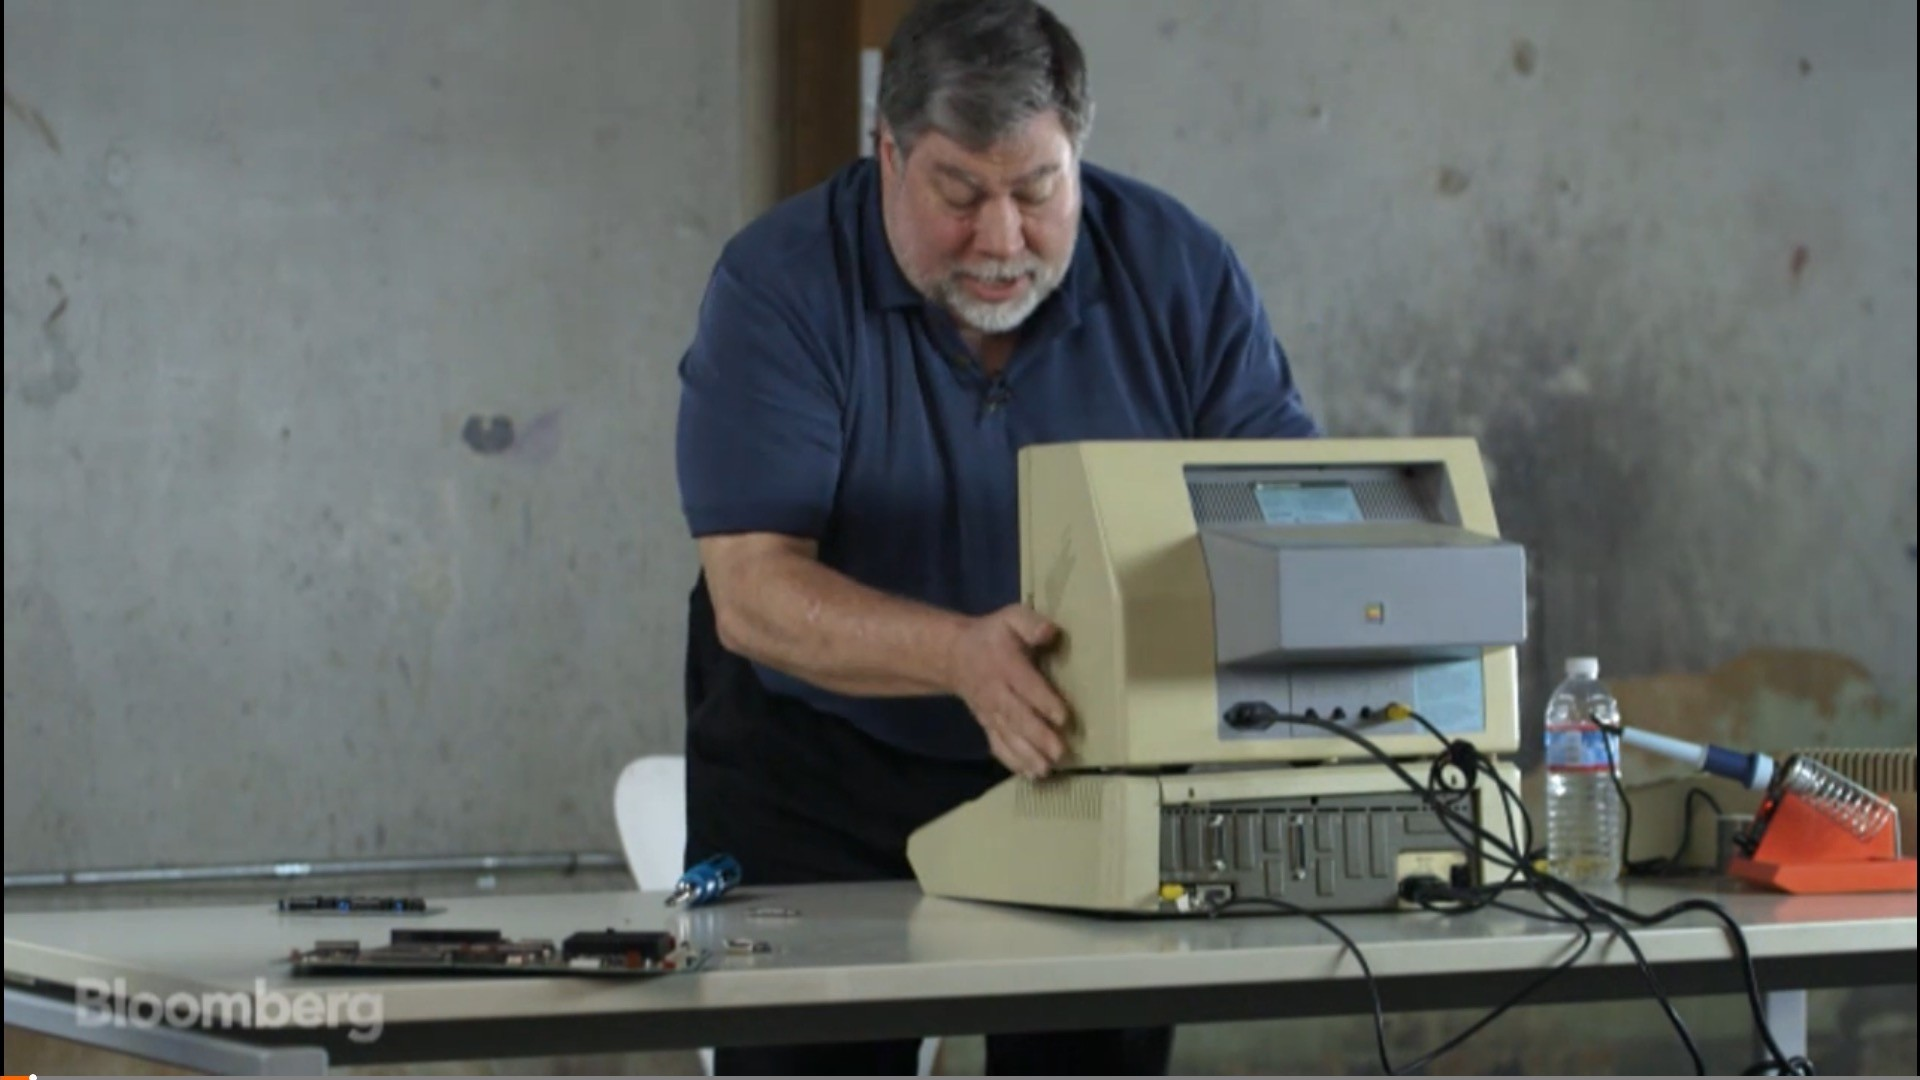 How Did Jobs and Woz Sell a Million Apple IIs? With a Spreadsheet ...